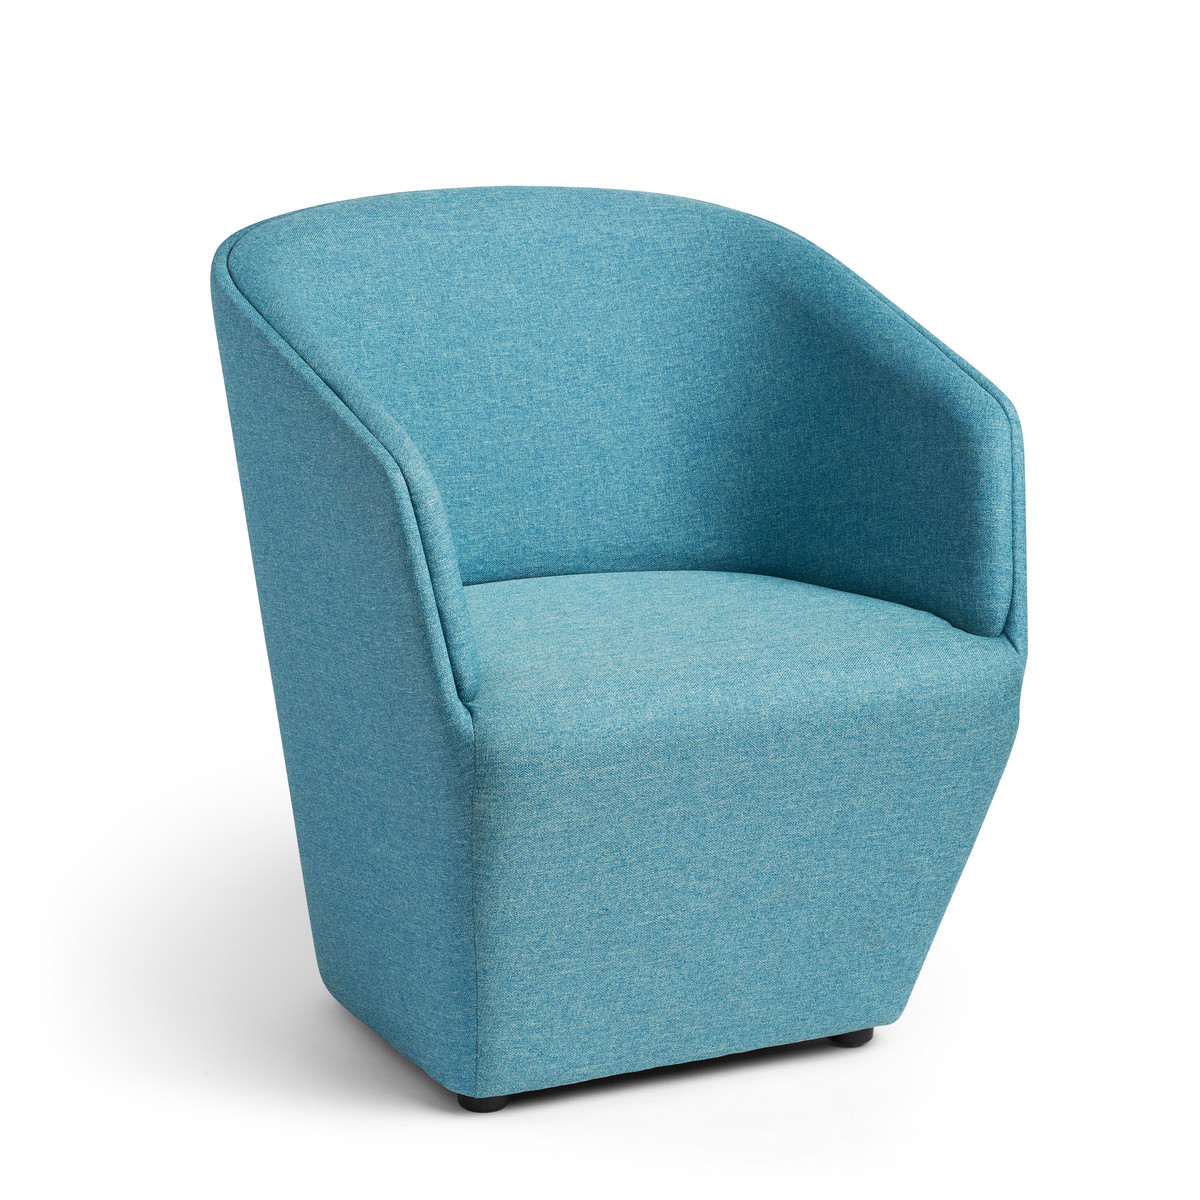 Blue Pitch Club Chair,Blue,hi Res. Loading Zoom